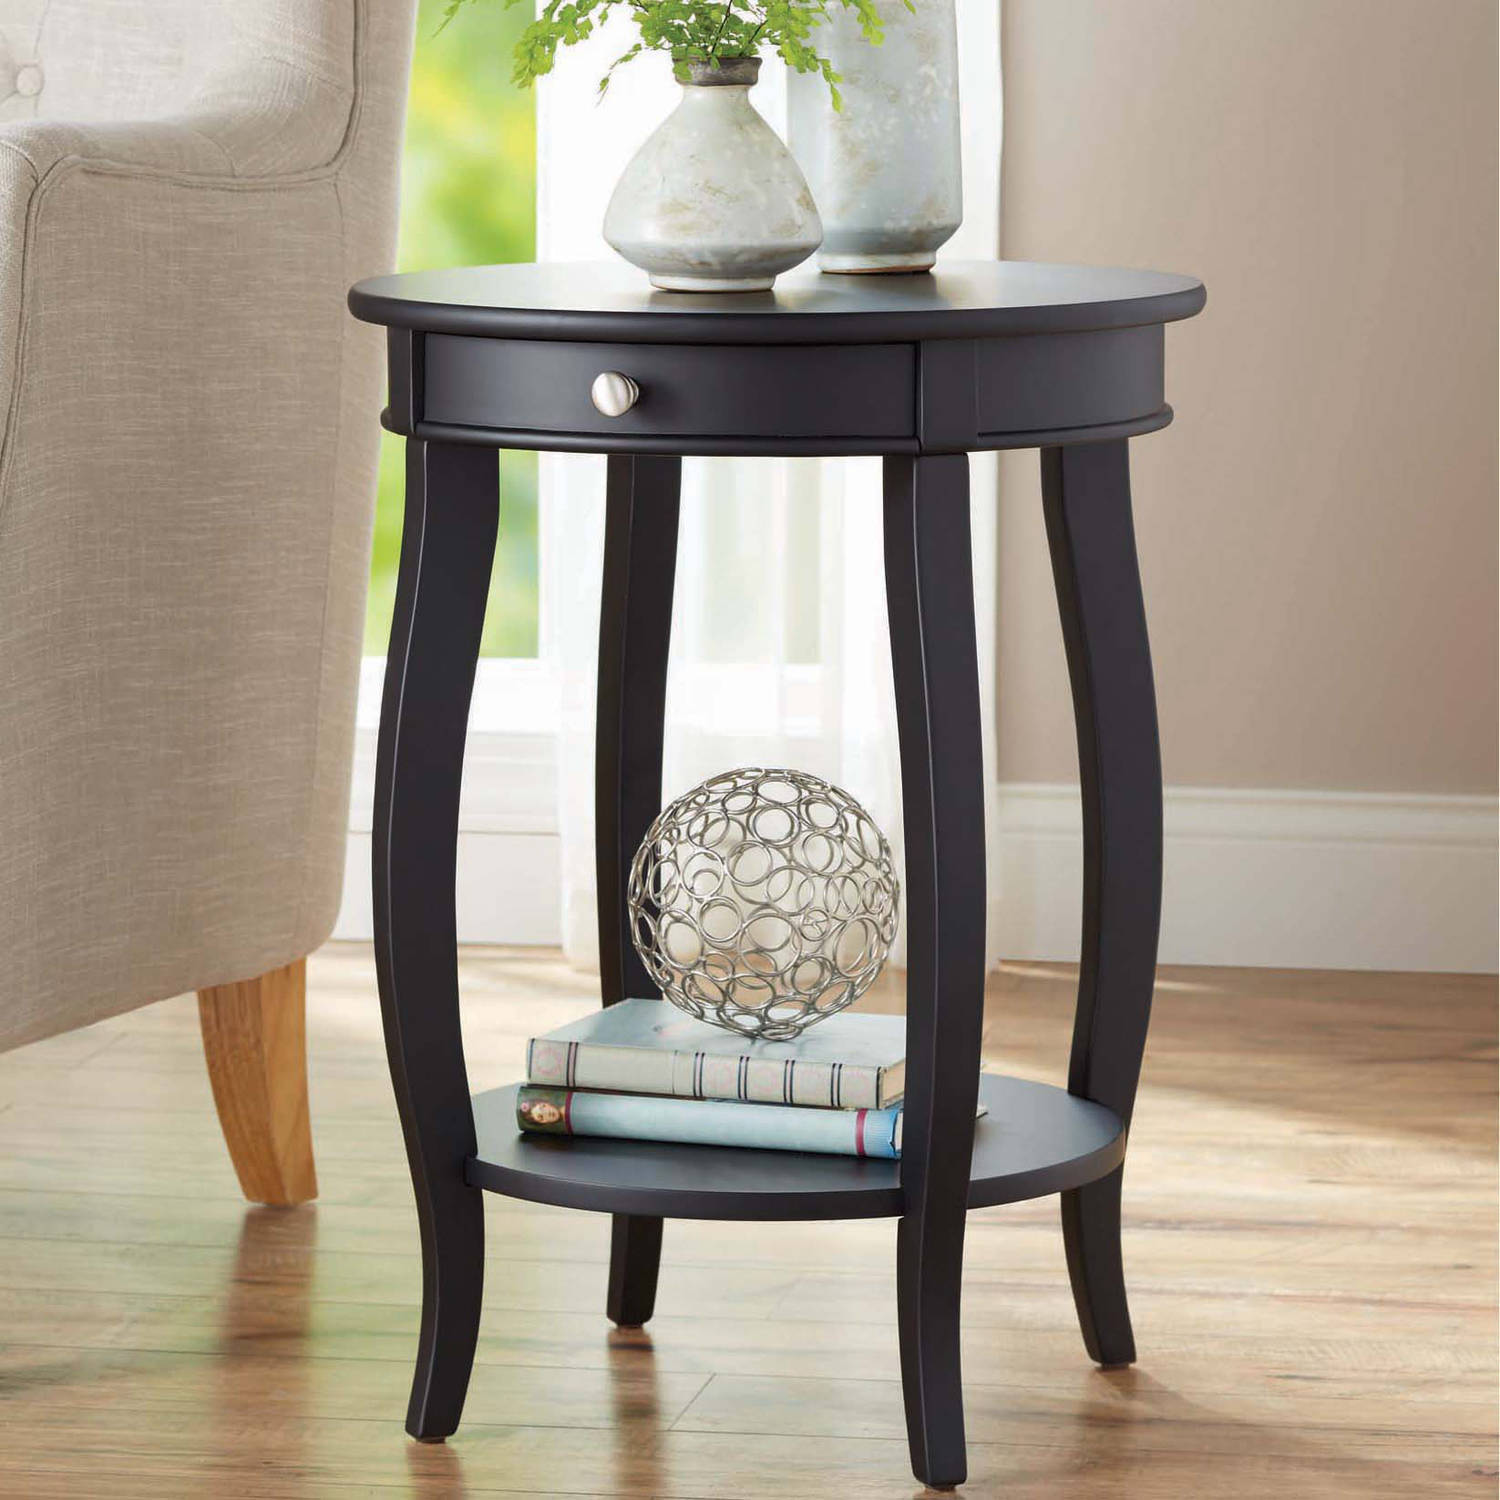 better homes gardens round accent table with drawer multiple low height colors battery powered desk lamp nautical cocktail target lighted base the iron company alpha furniture